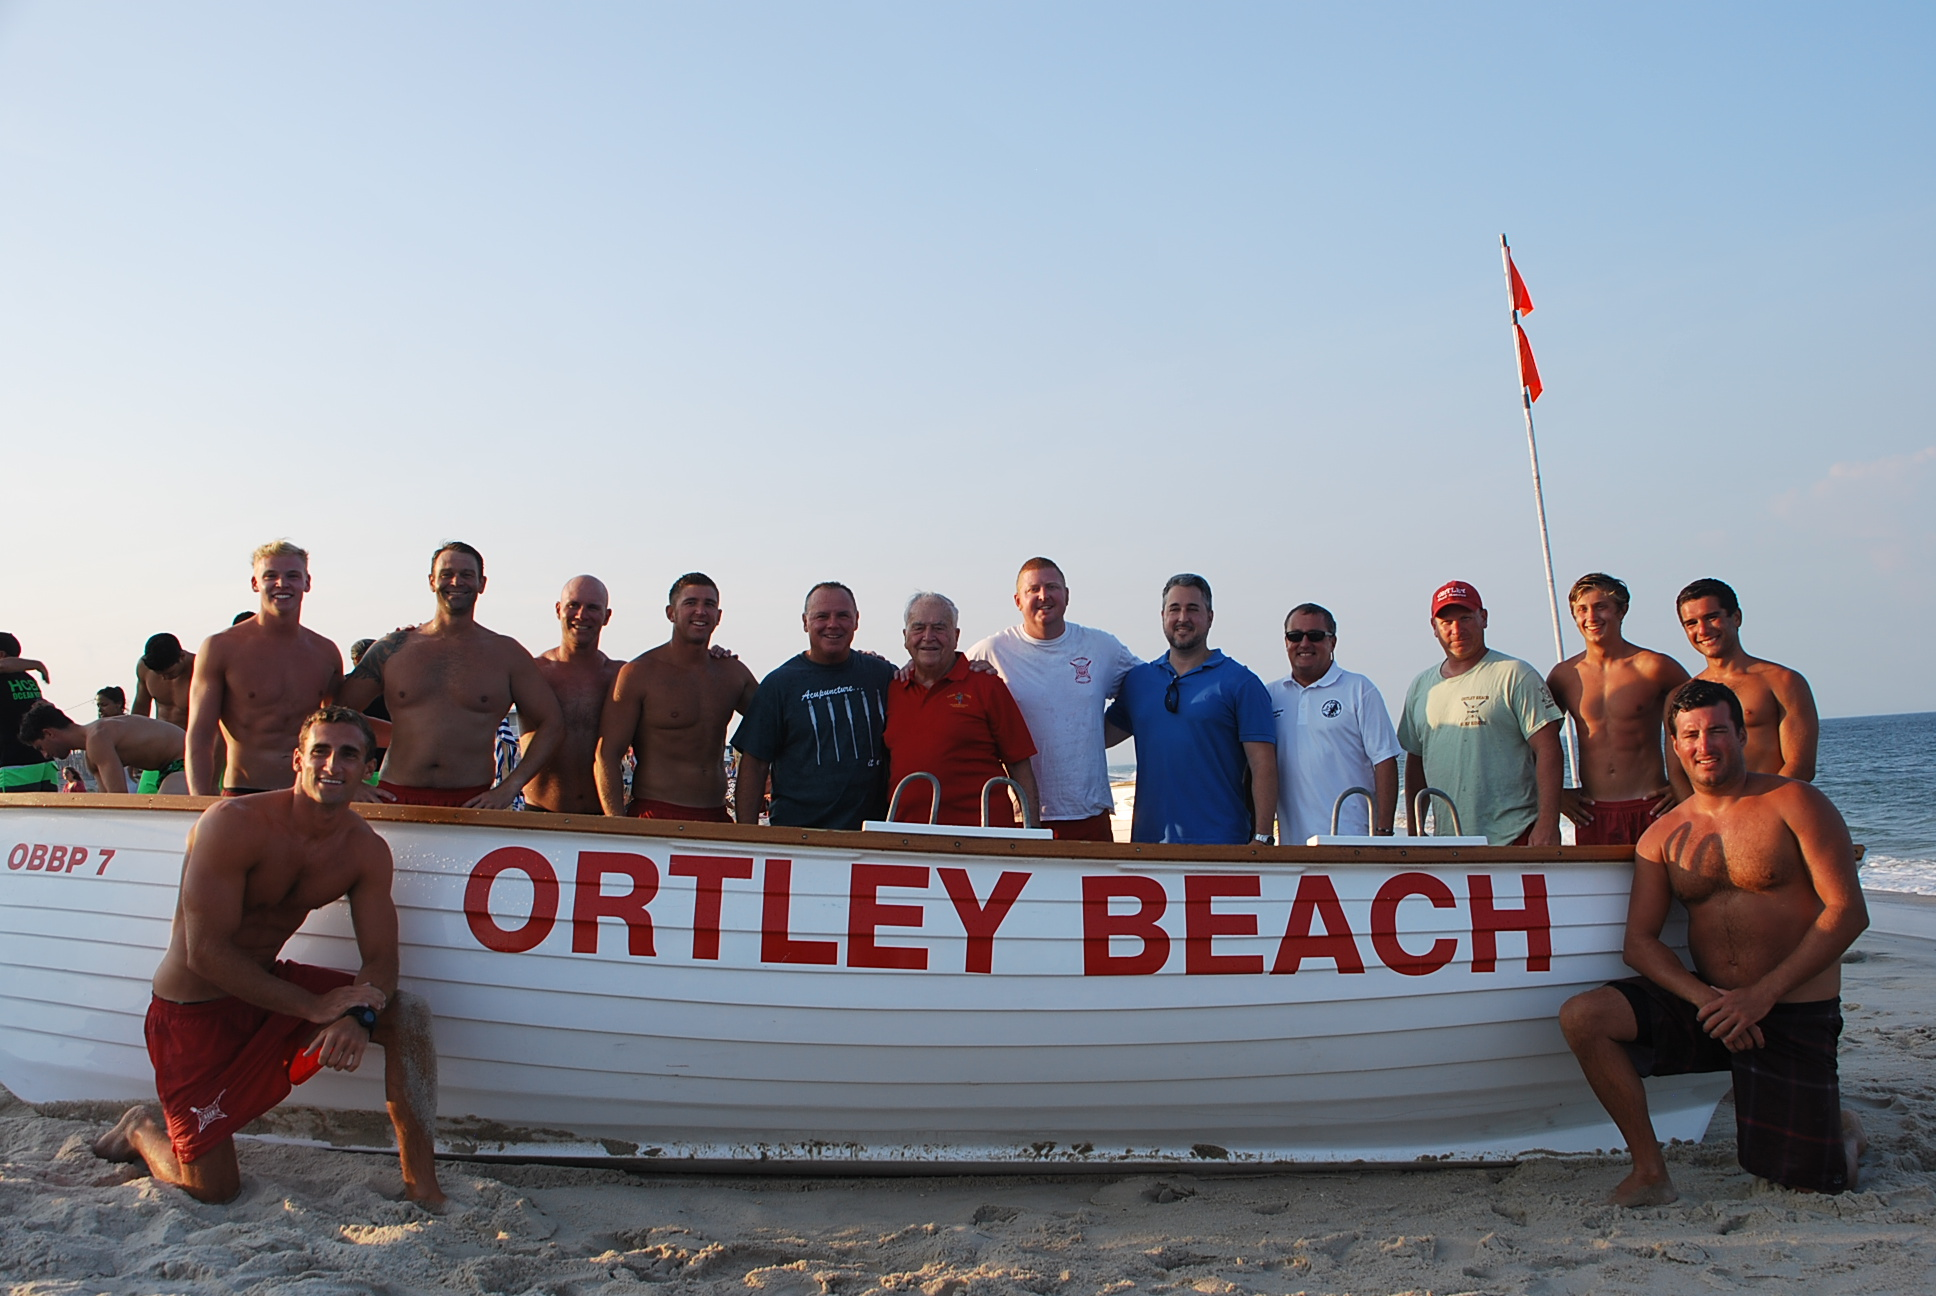 Ortley Beach lifeguards at the neighborhood's first tournament since Superstorm Sandy struck in 2012. (Photo: Toms River Twp.)